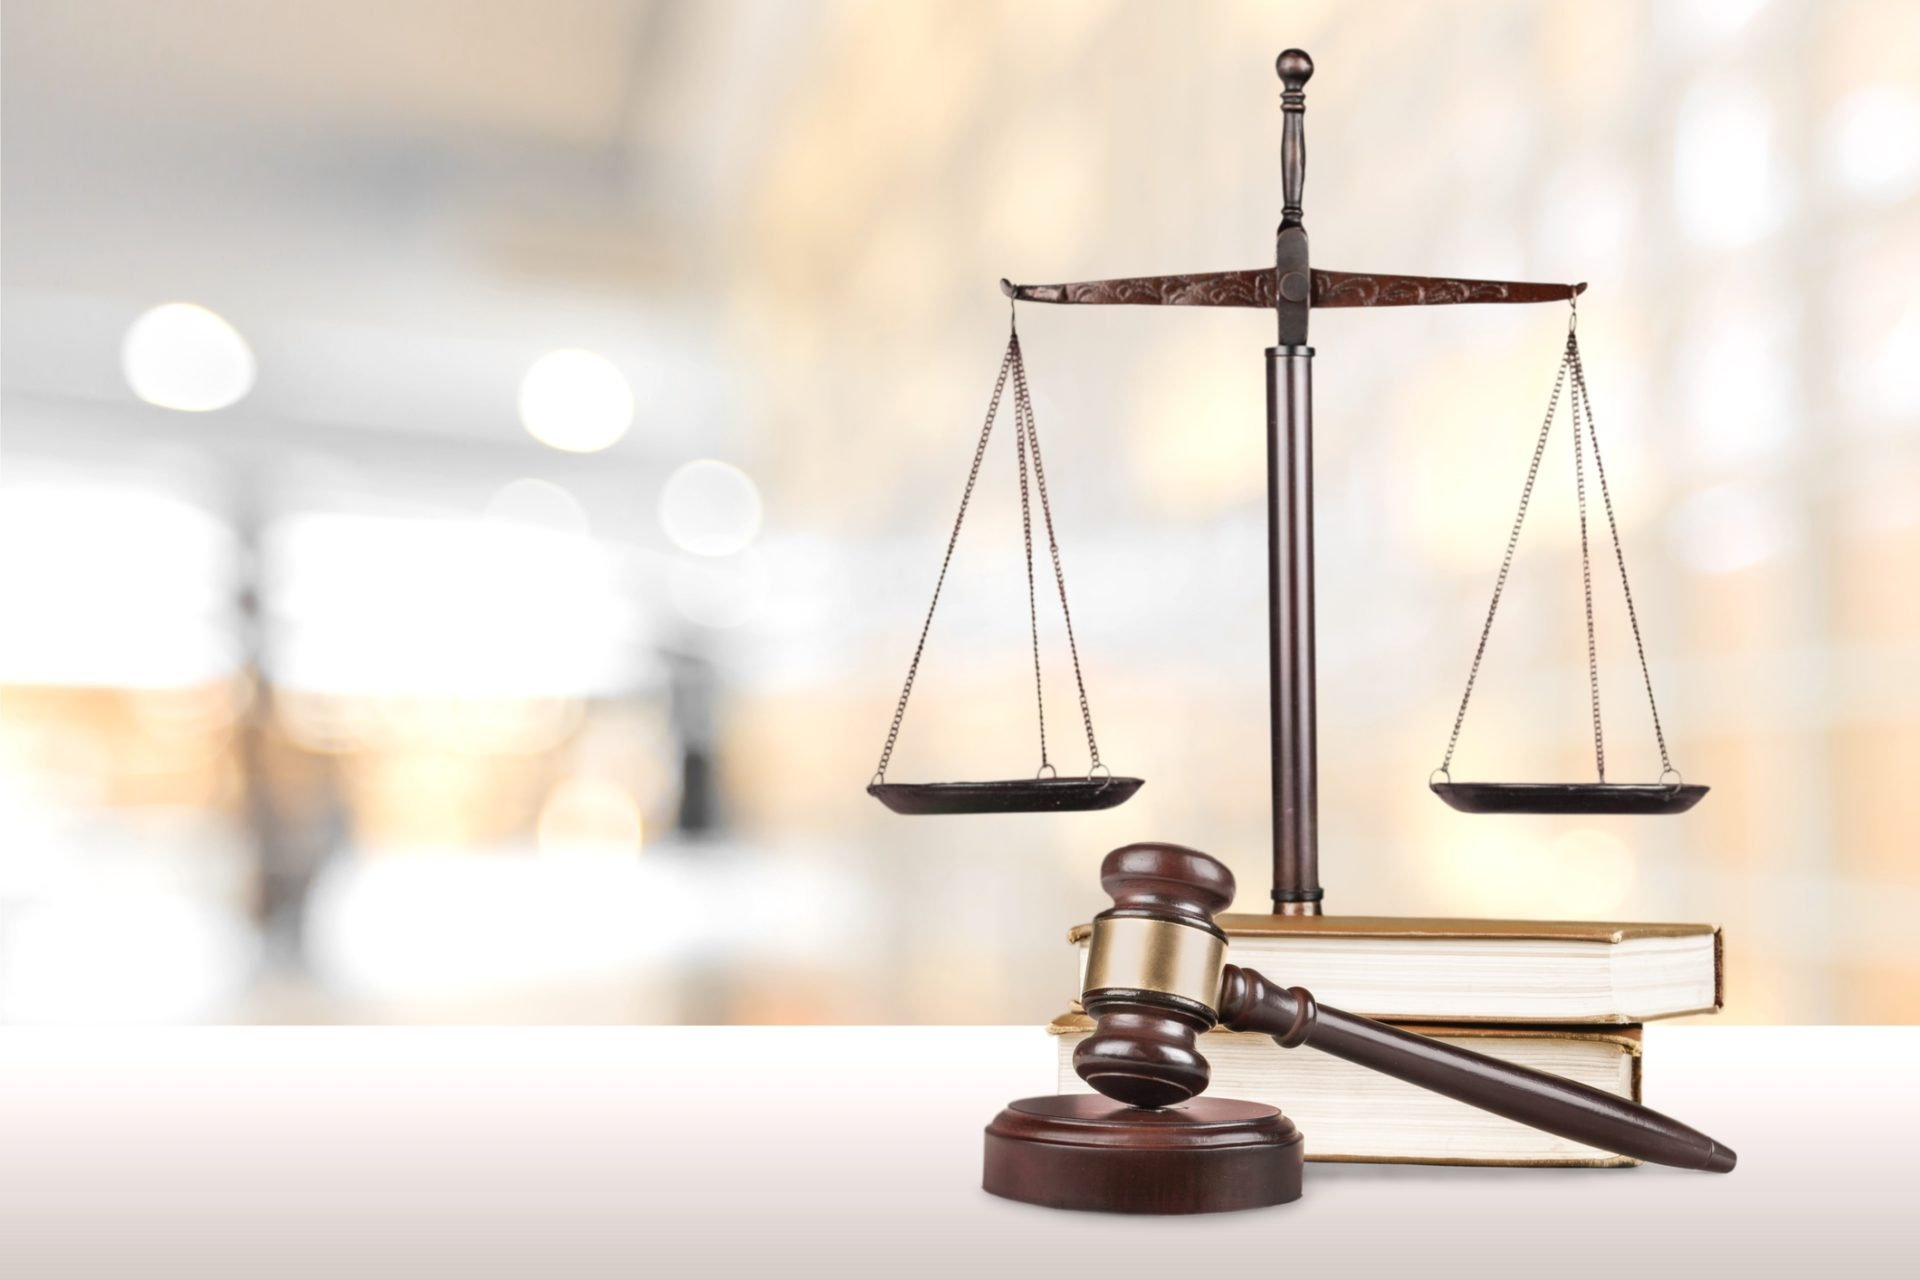 Weight and gavel, legal services